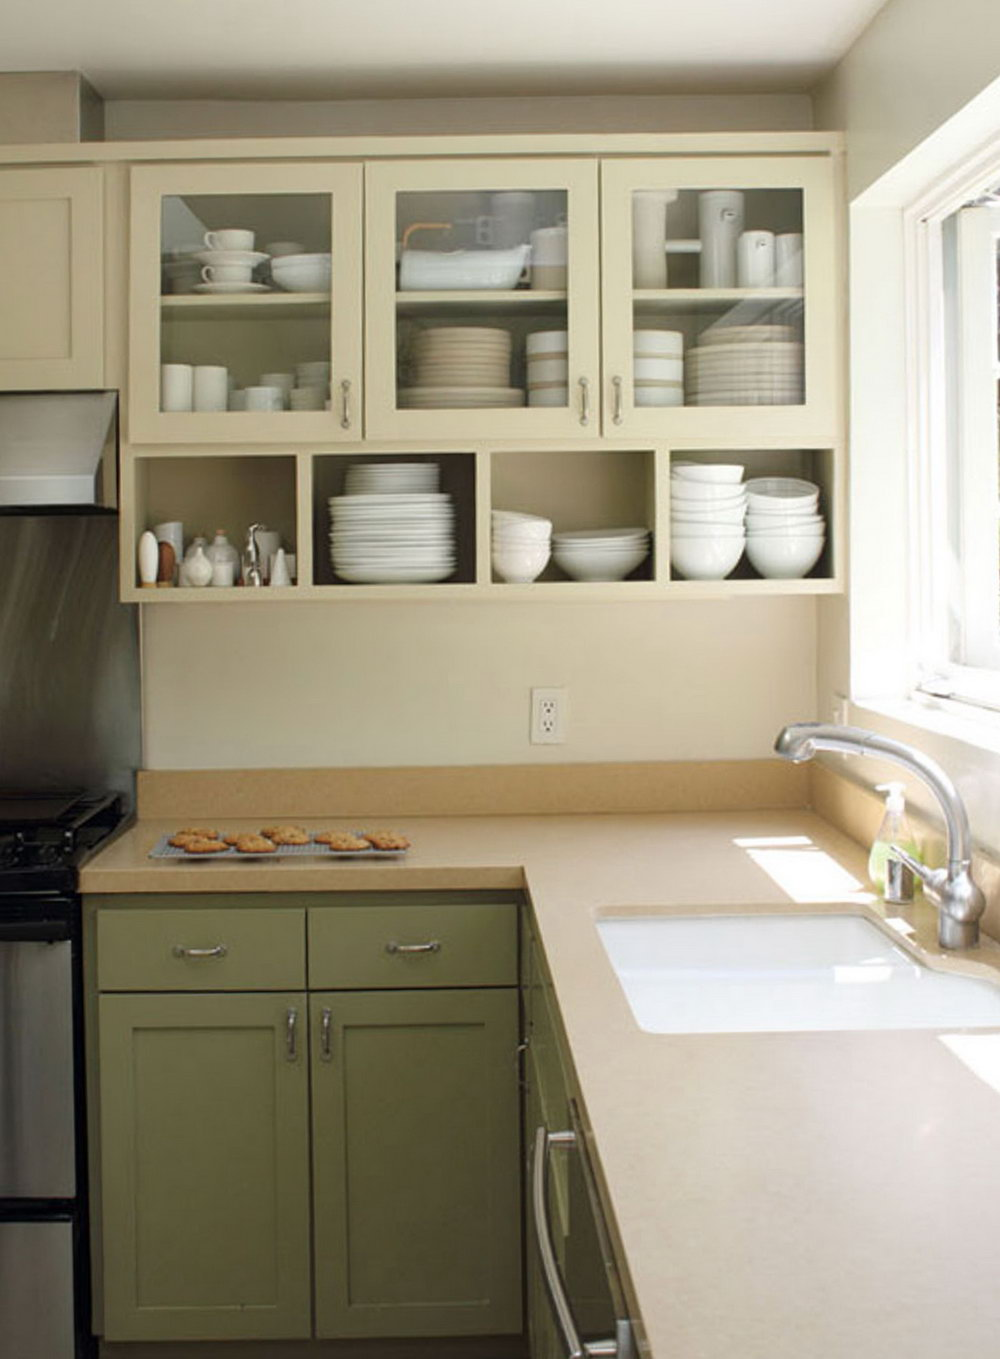 Painting Lower Kitchen Cabinets Different Colors